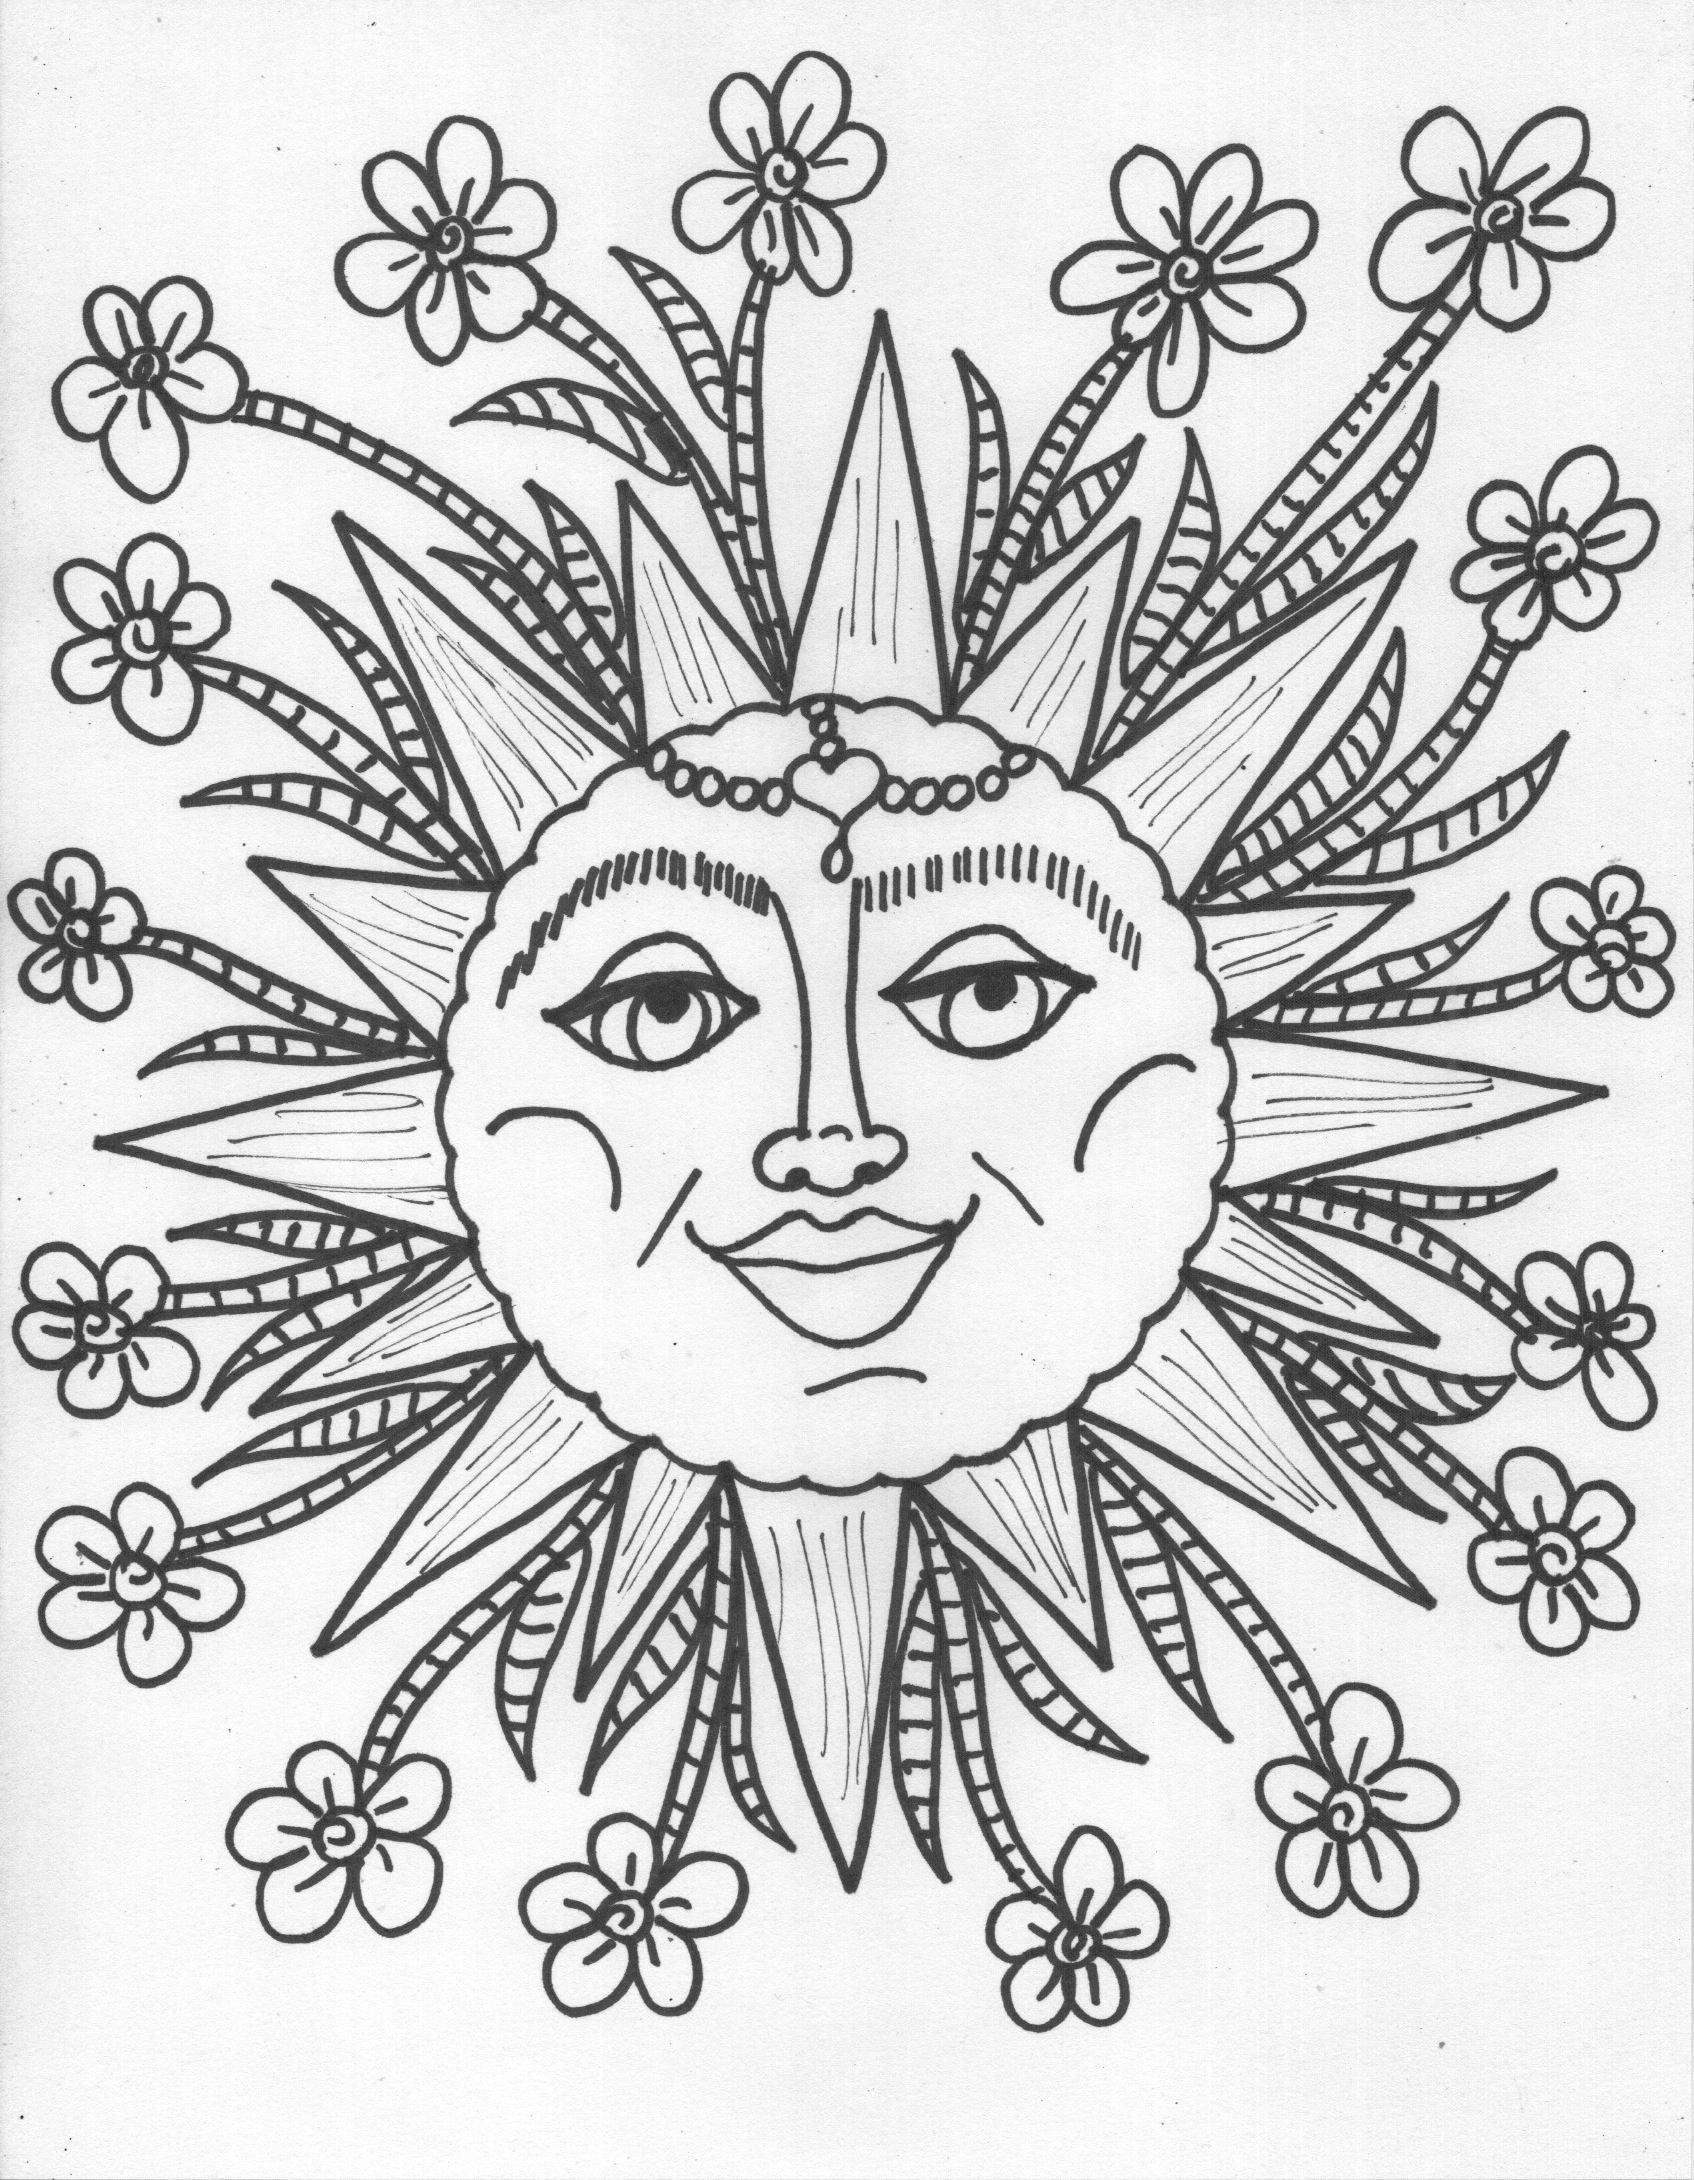 Hippie Coloring Pages Pdf : Pics of psychedelic moon coloring pages hippie sun